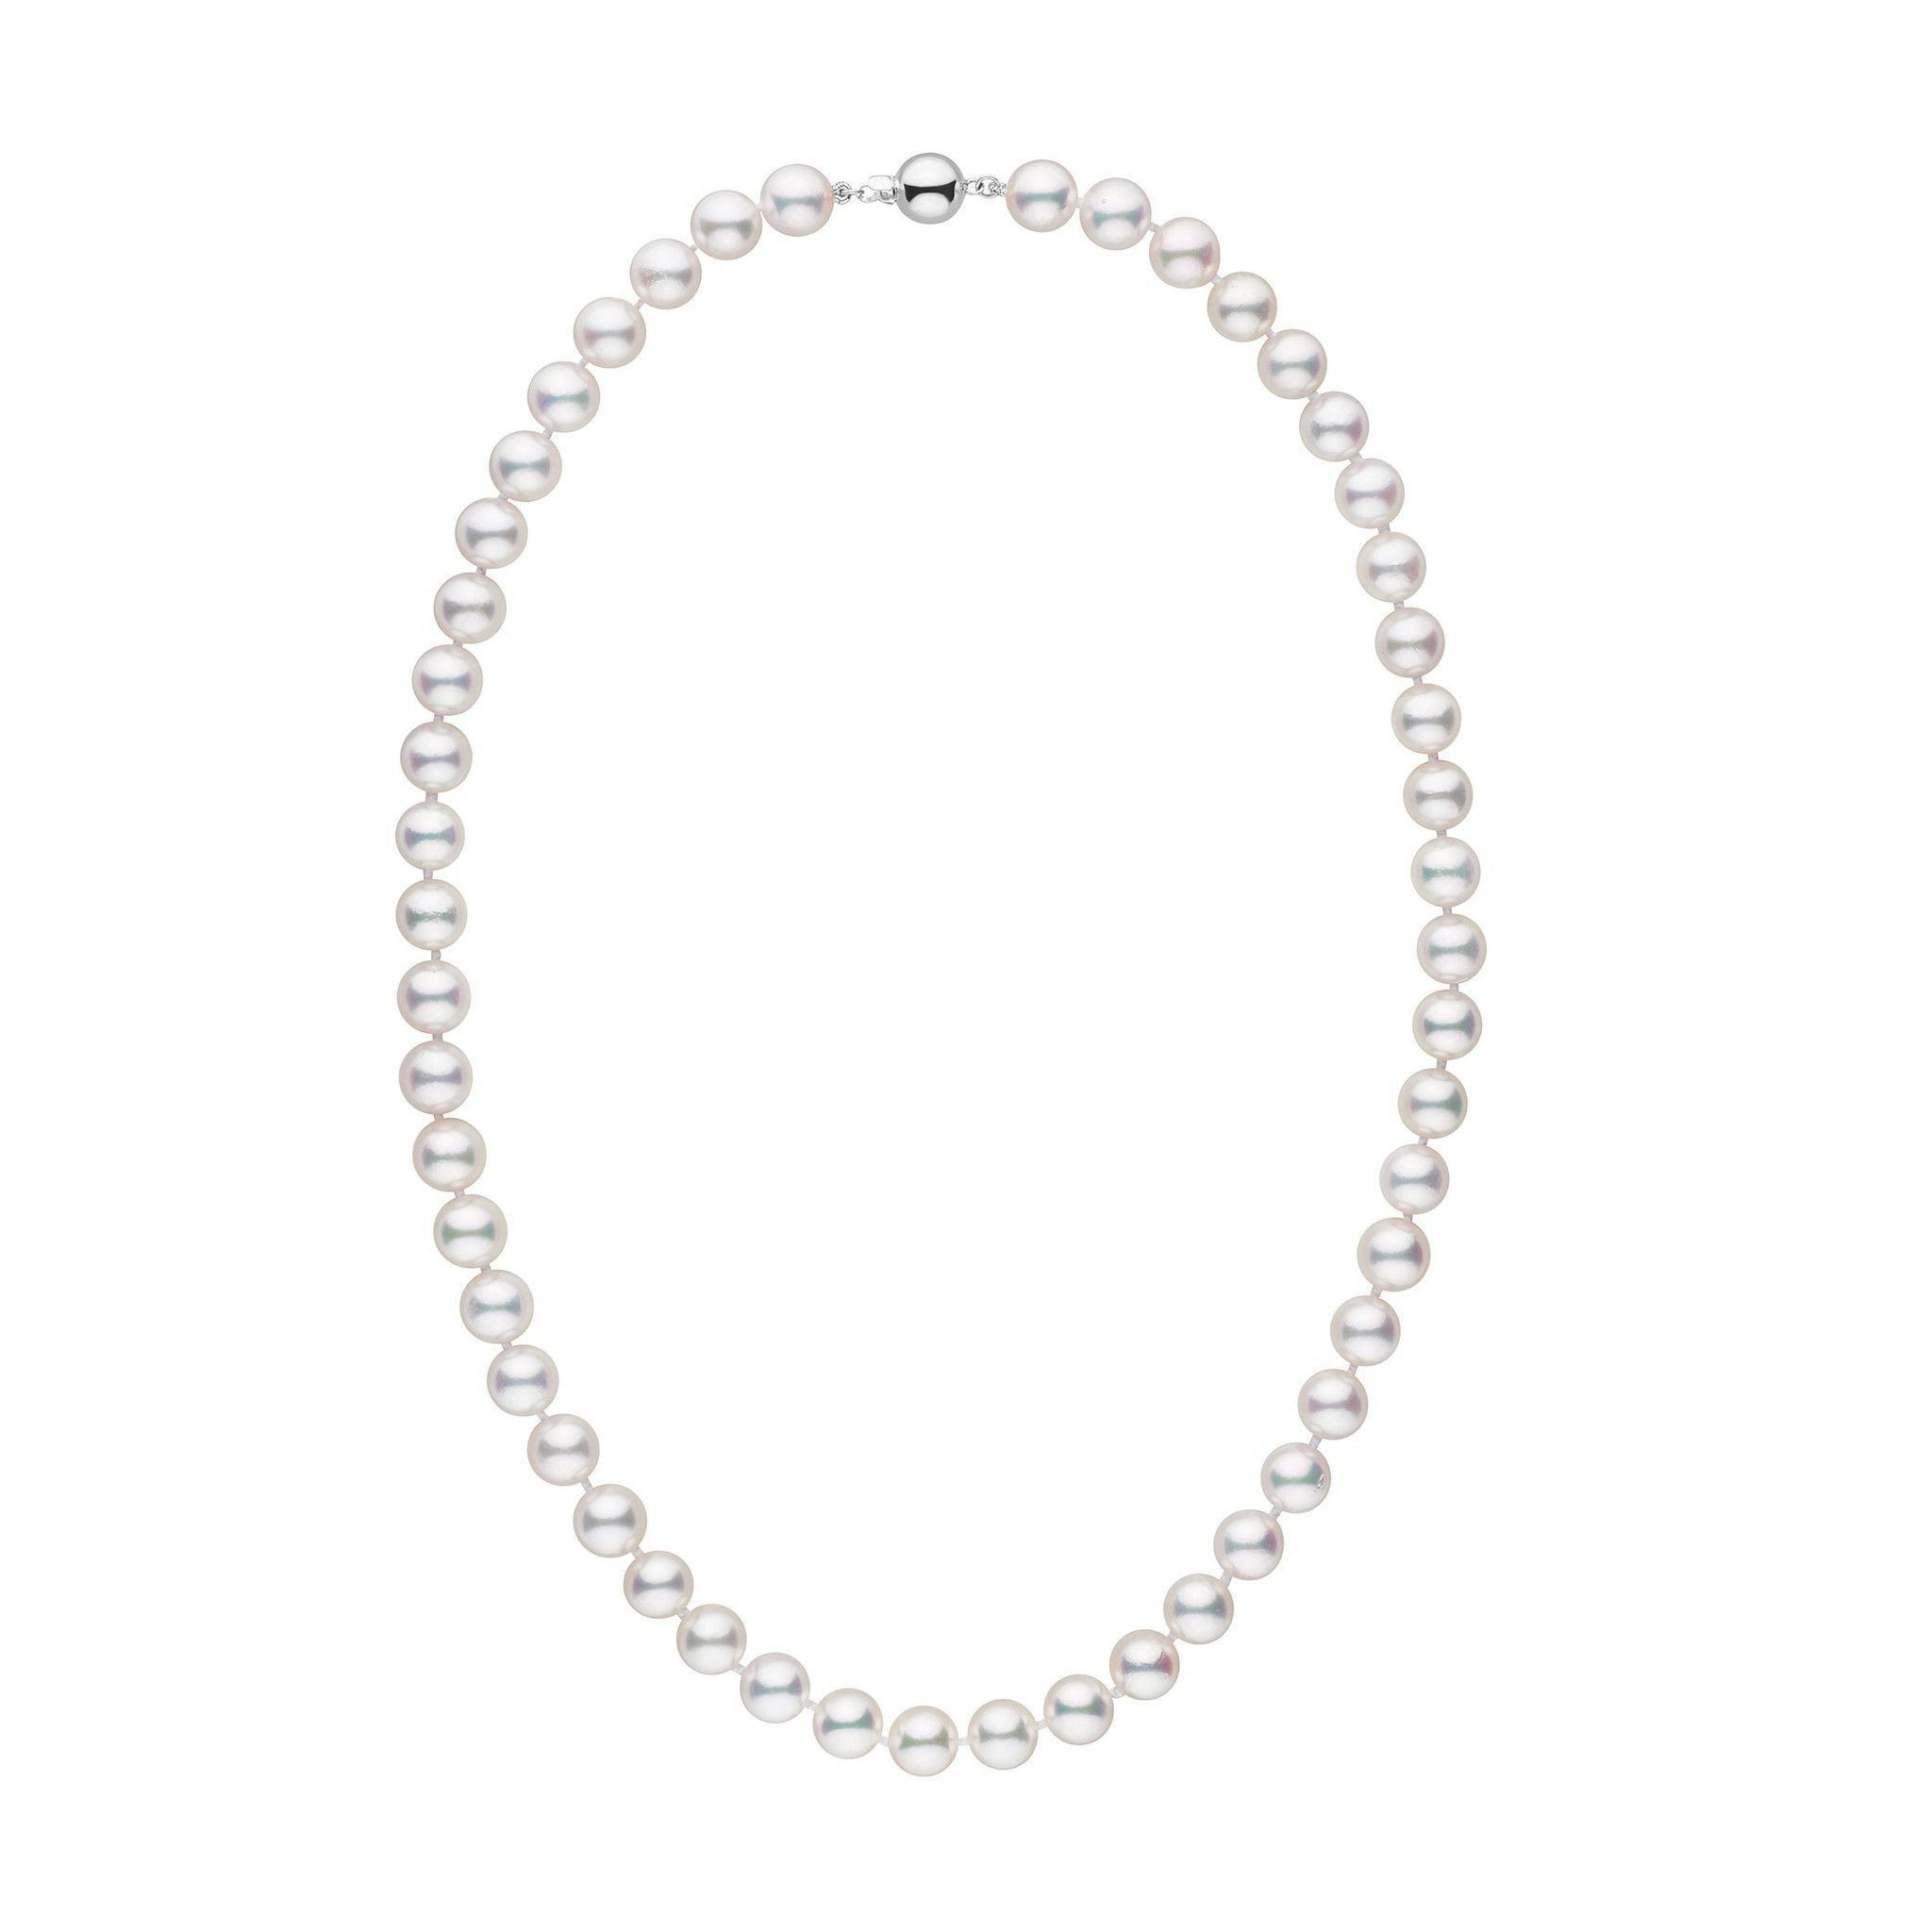 8.0-8.5 mm 18 inch AAA White Akoya Pearl Necklace